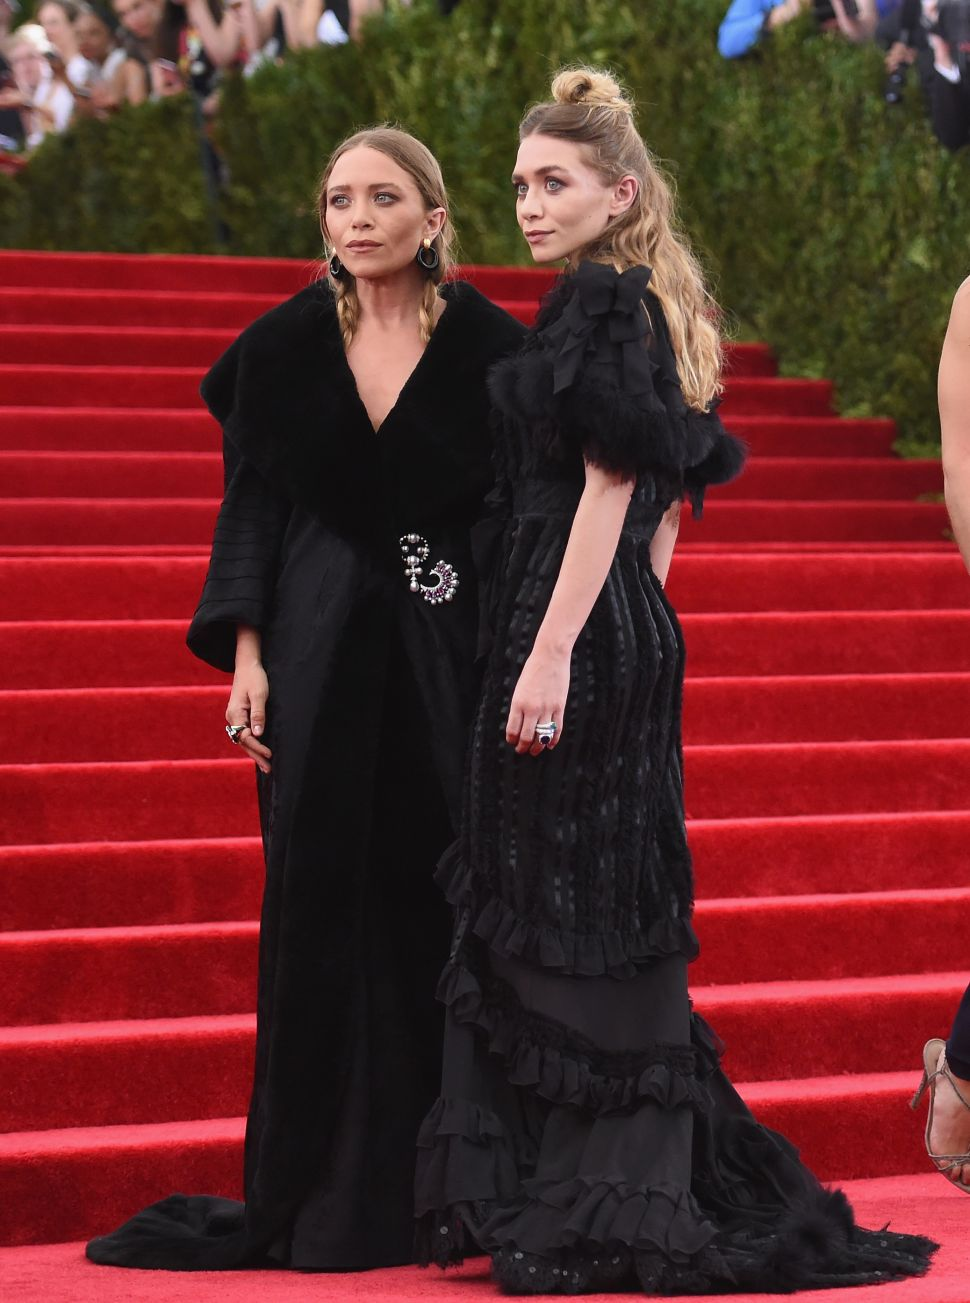 An Exhibit Dedicated to the Olsens Verifies Our Celeb-Obsessed Society